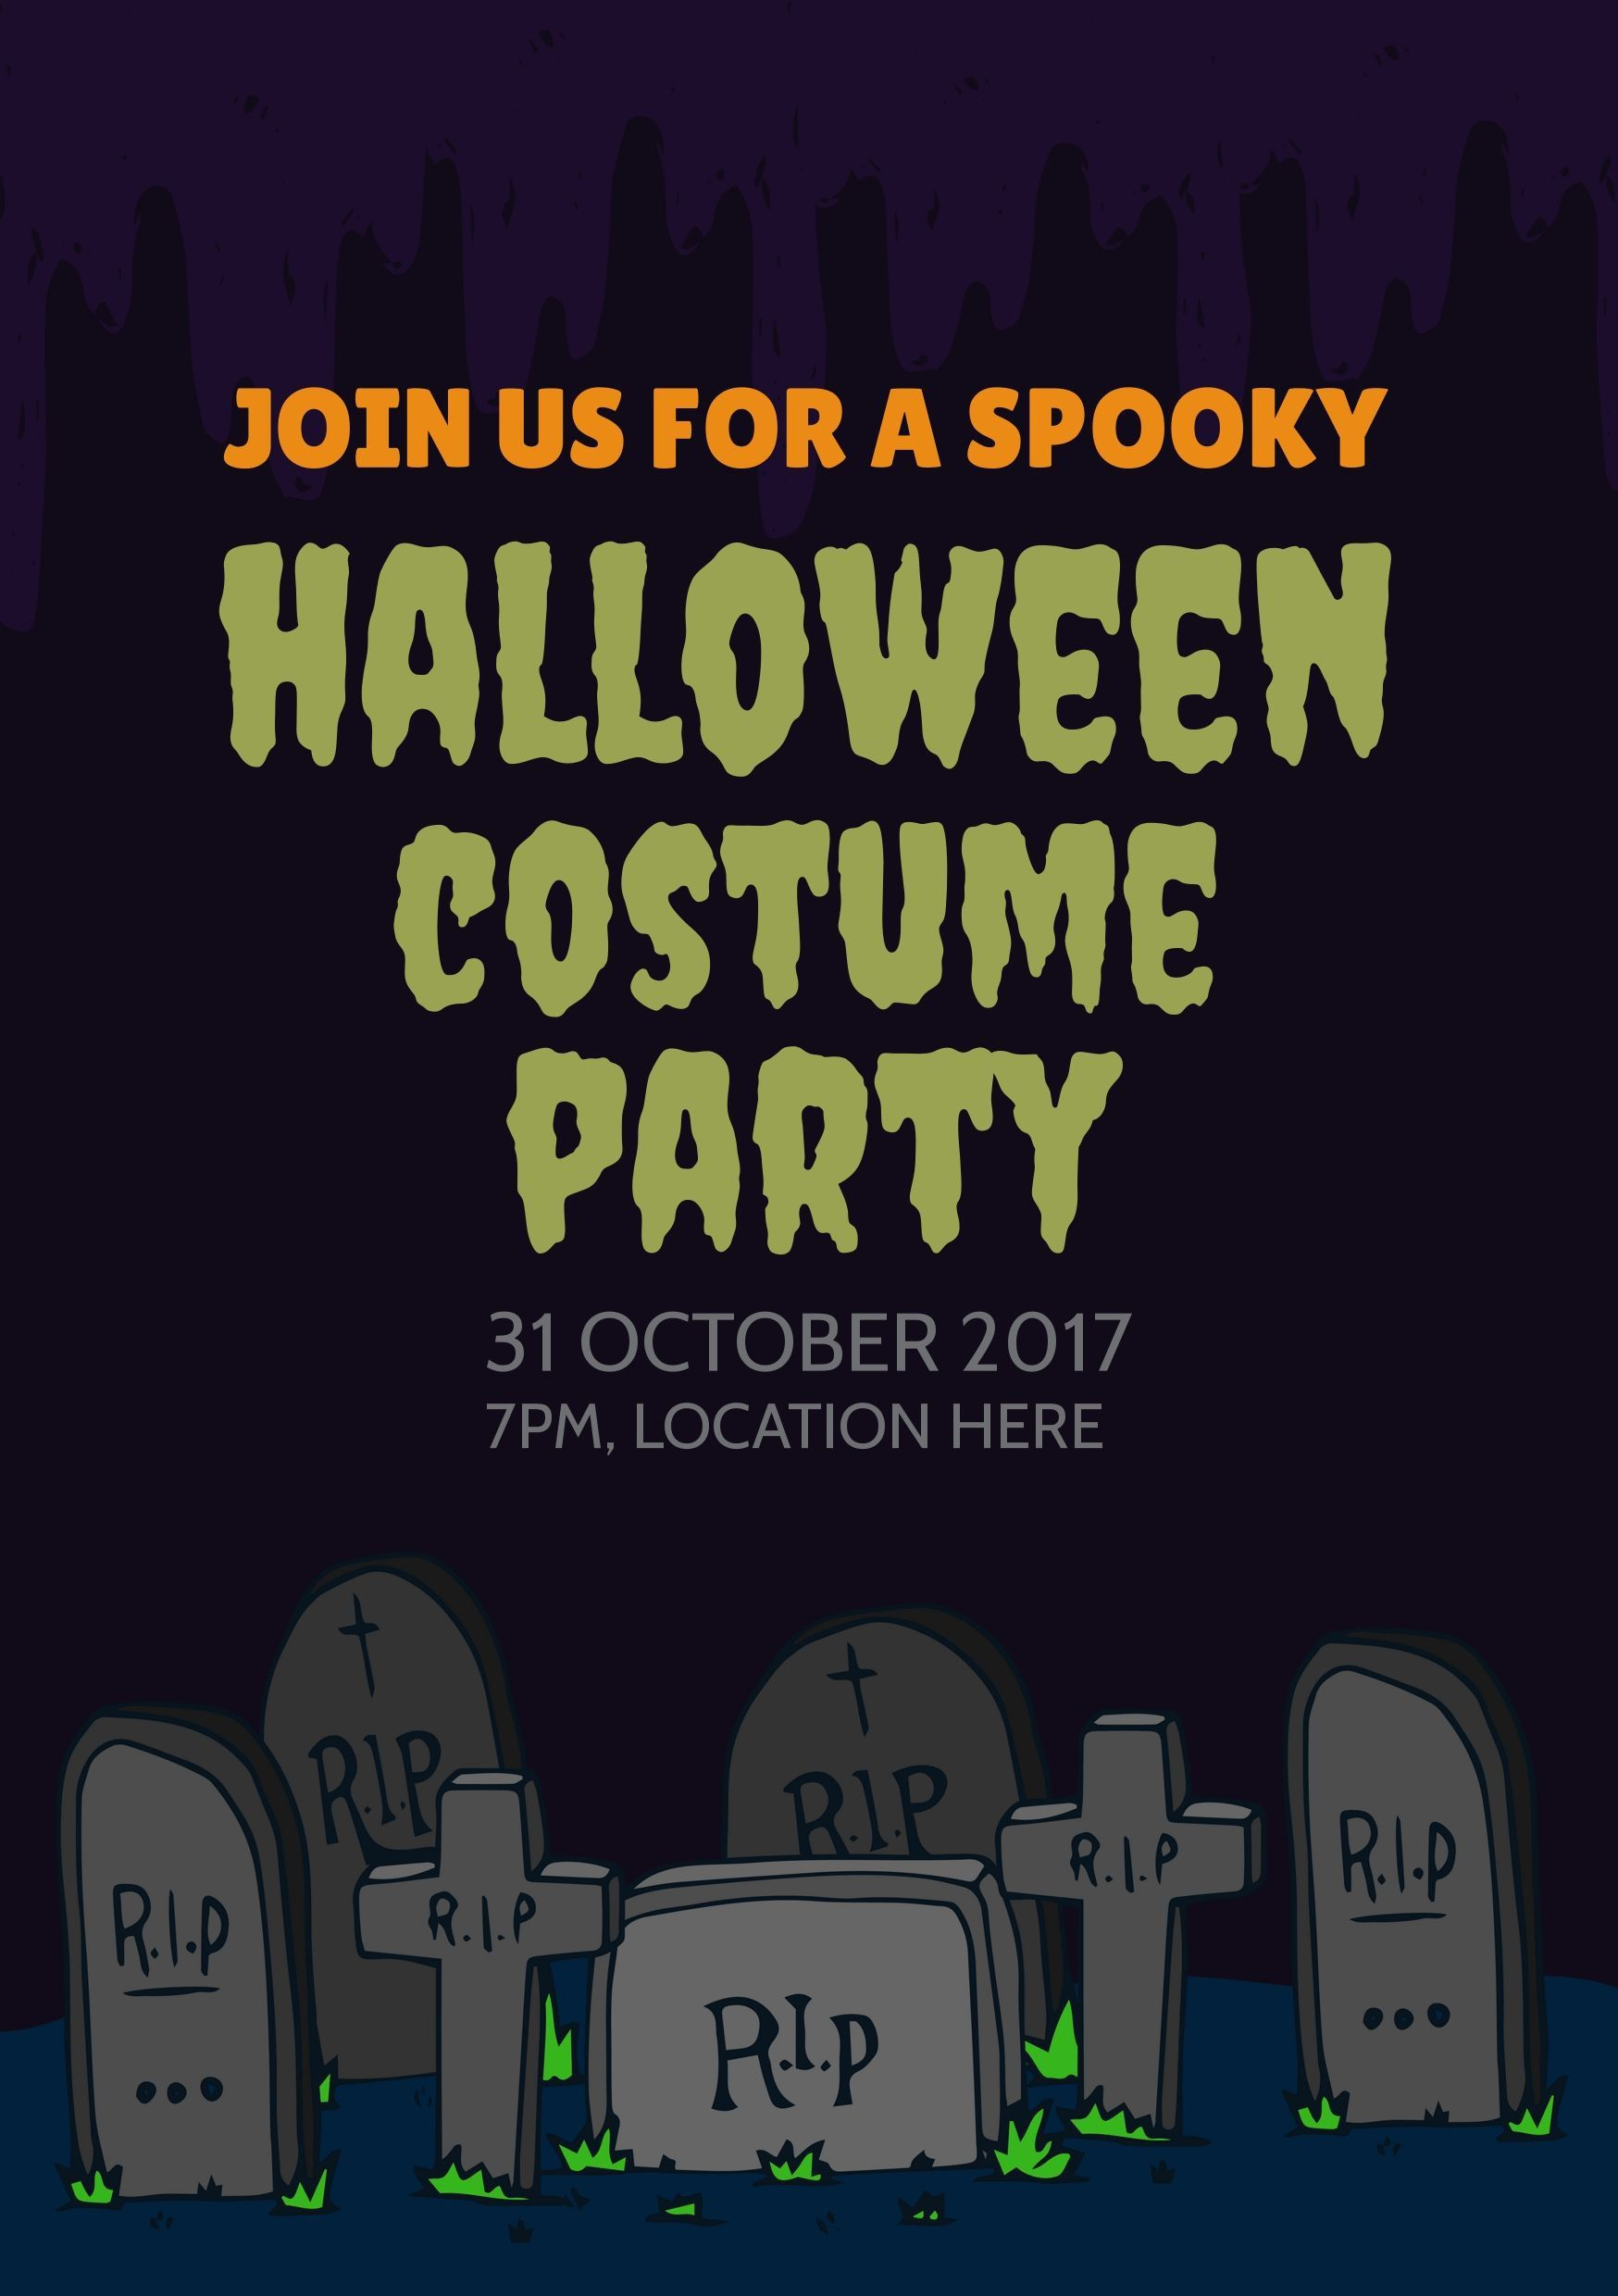 004 Exceptional Halloween Party Invite Template High Definition  Templates - Free Printable Spooky Invitation BirthdayFull